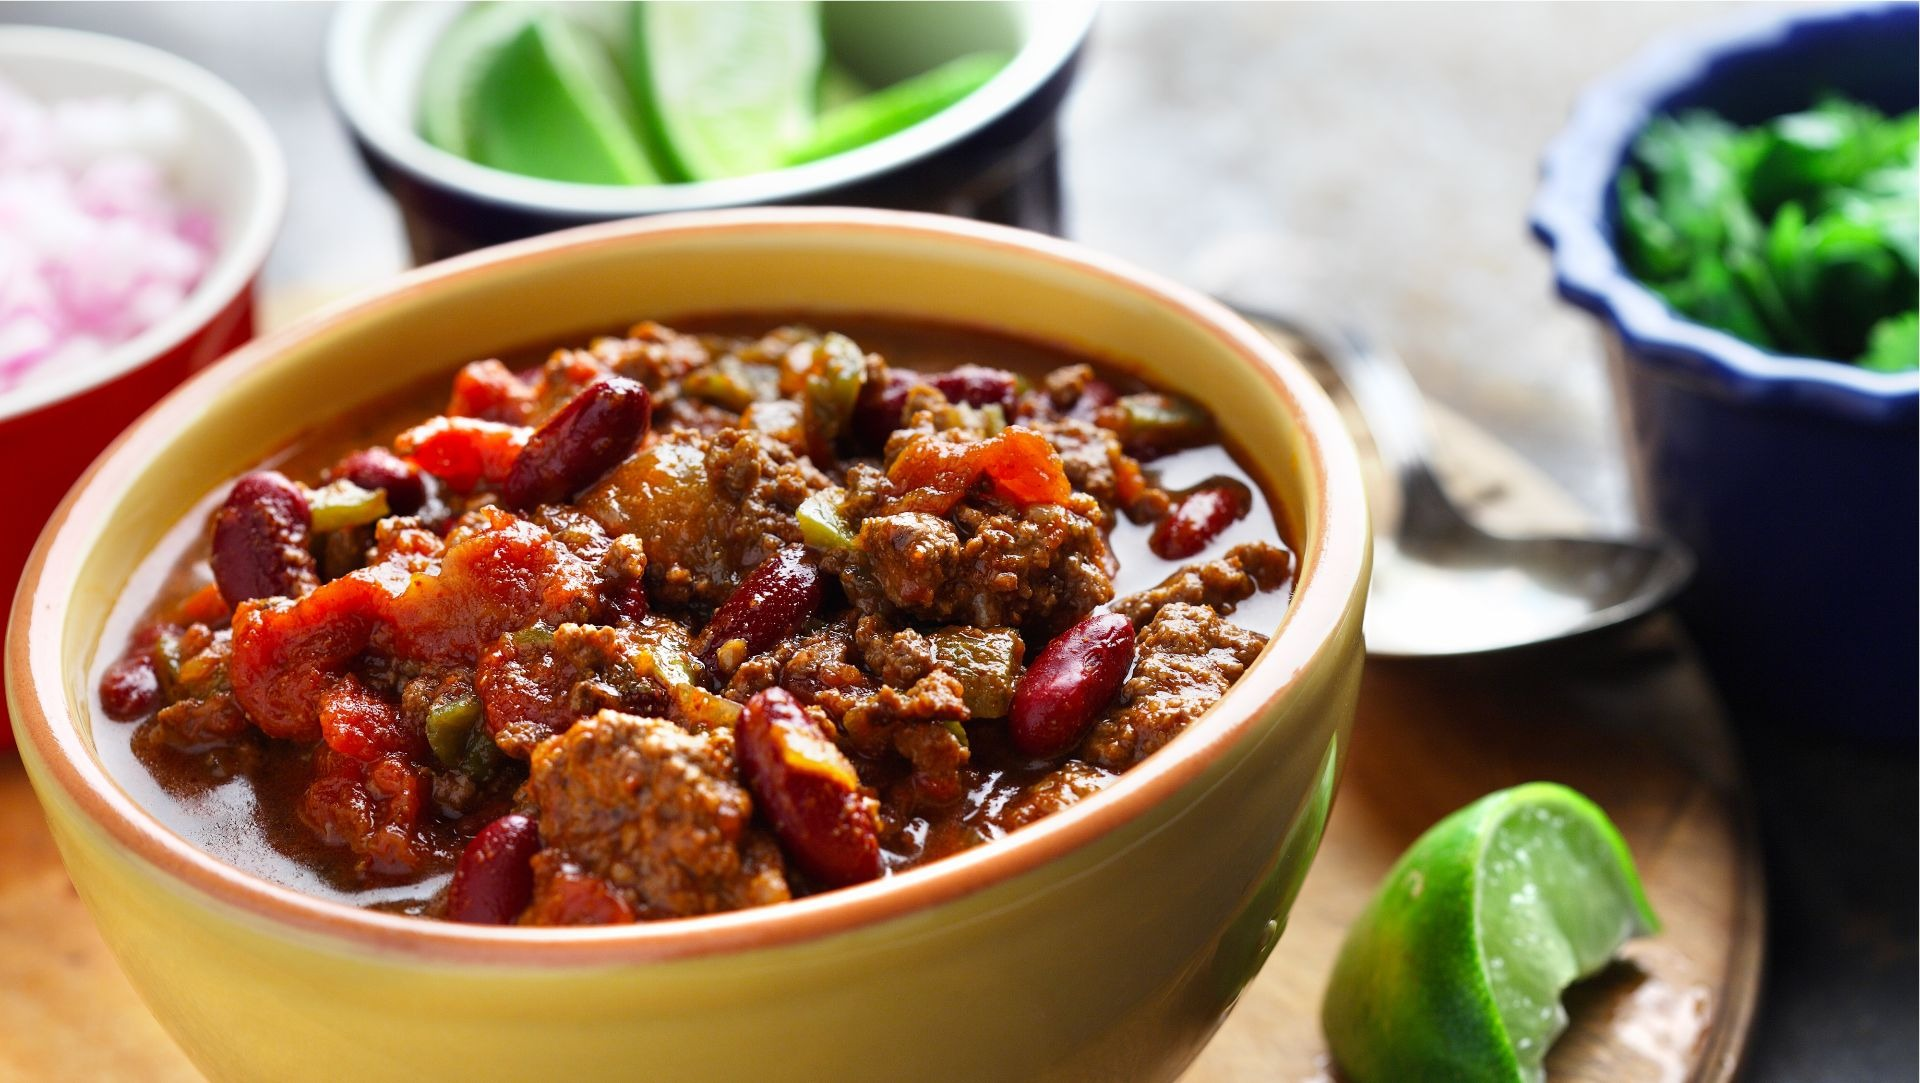 Bowl of chili ground beef, red peppers and beans